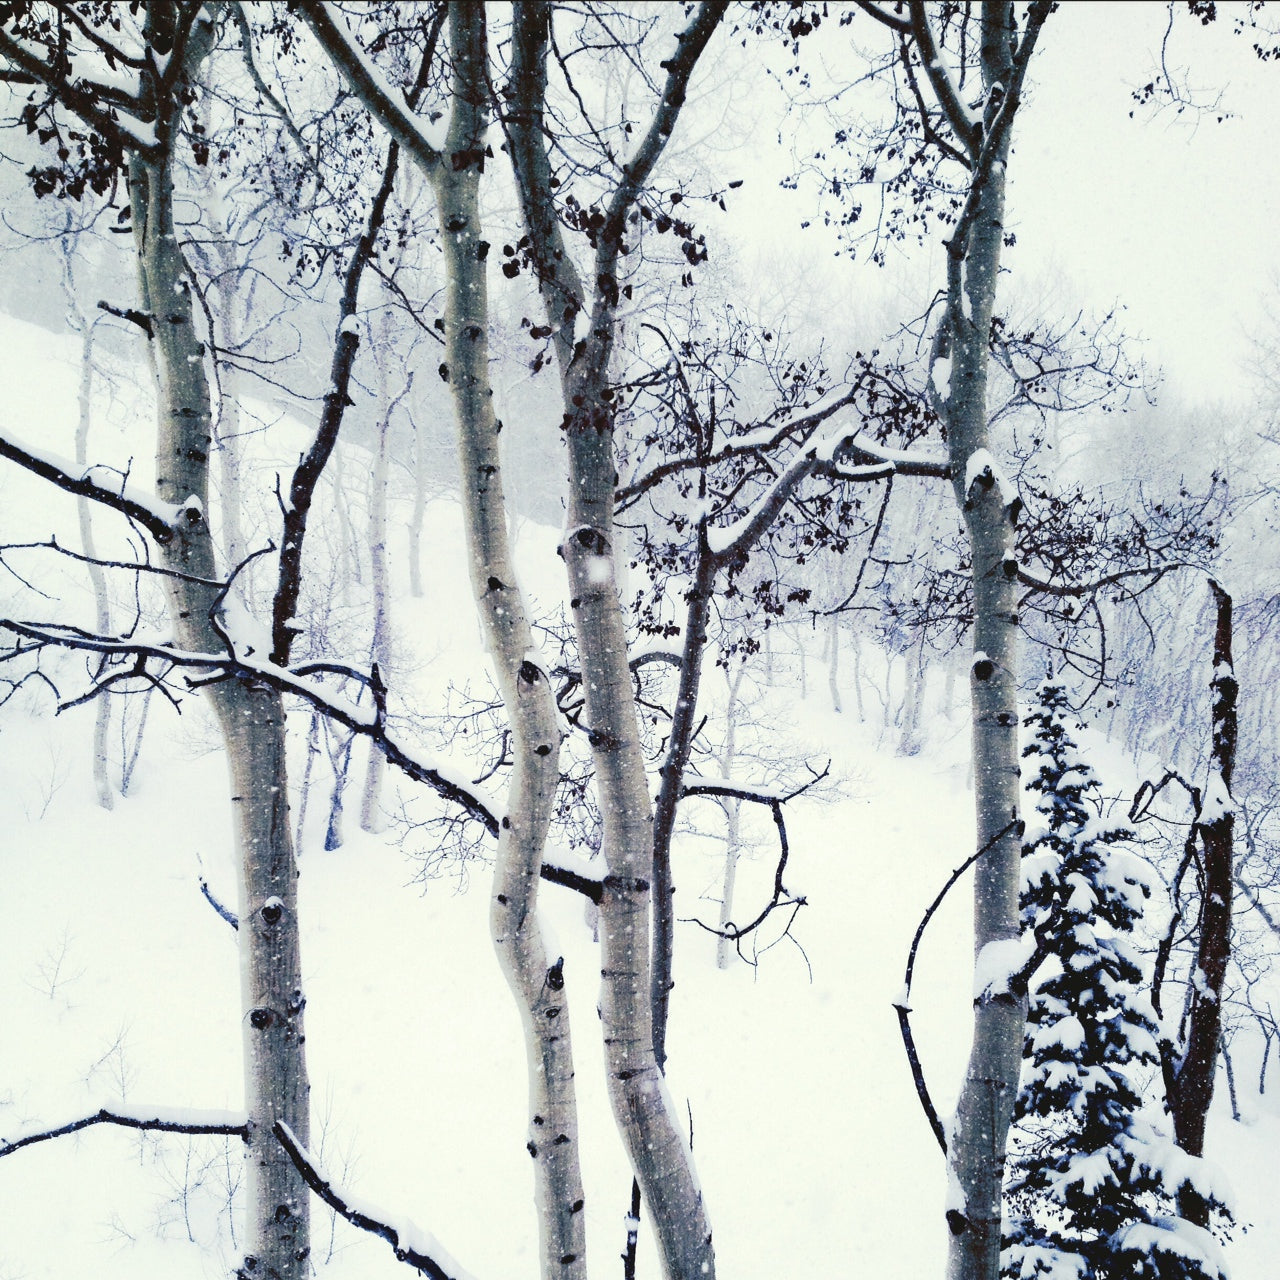 Freekskier powder trees artsy